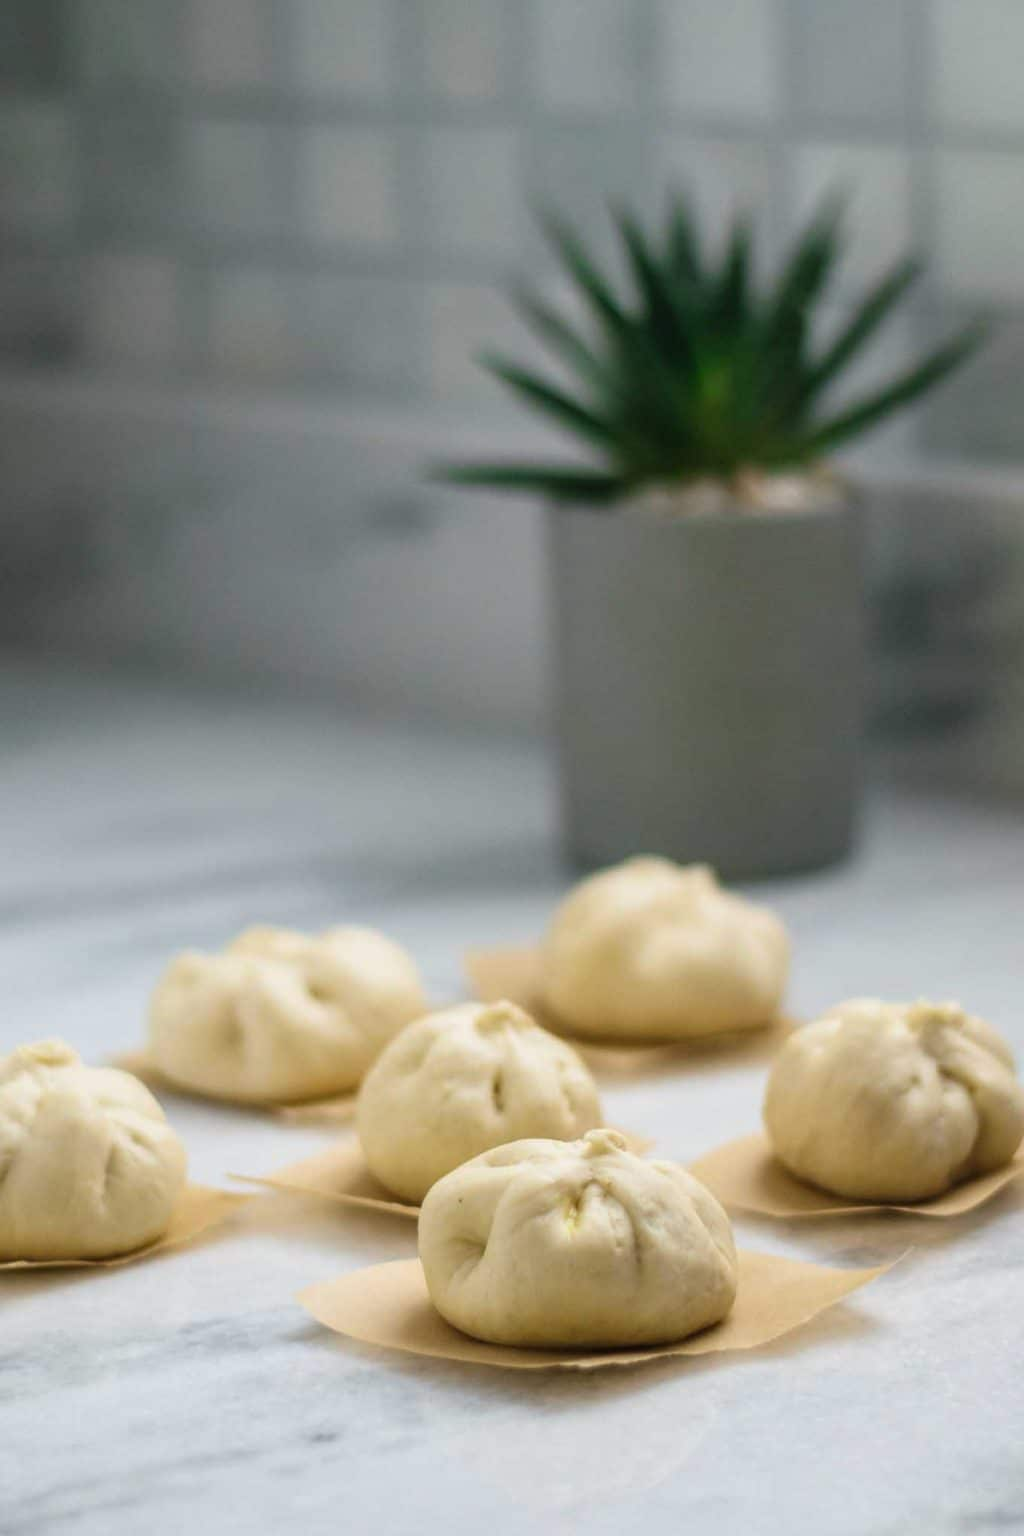 buns shaped and ready to steam